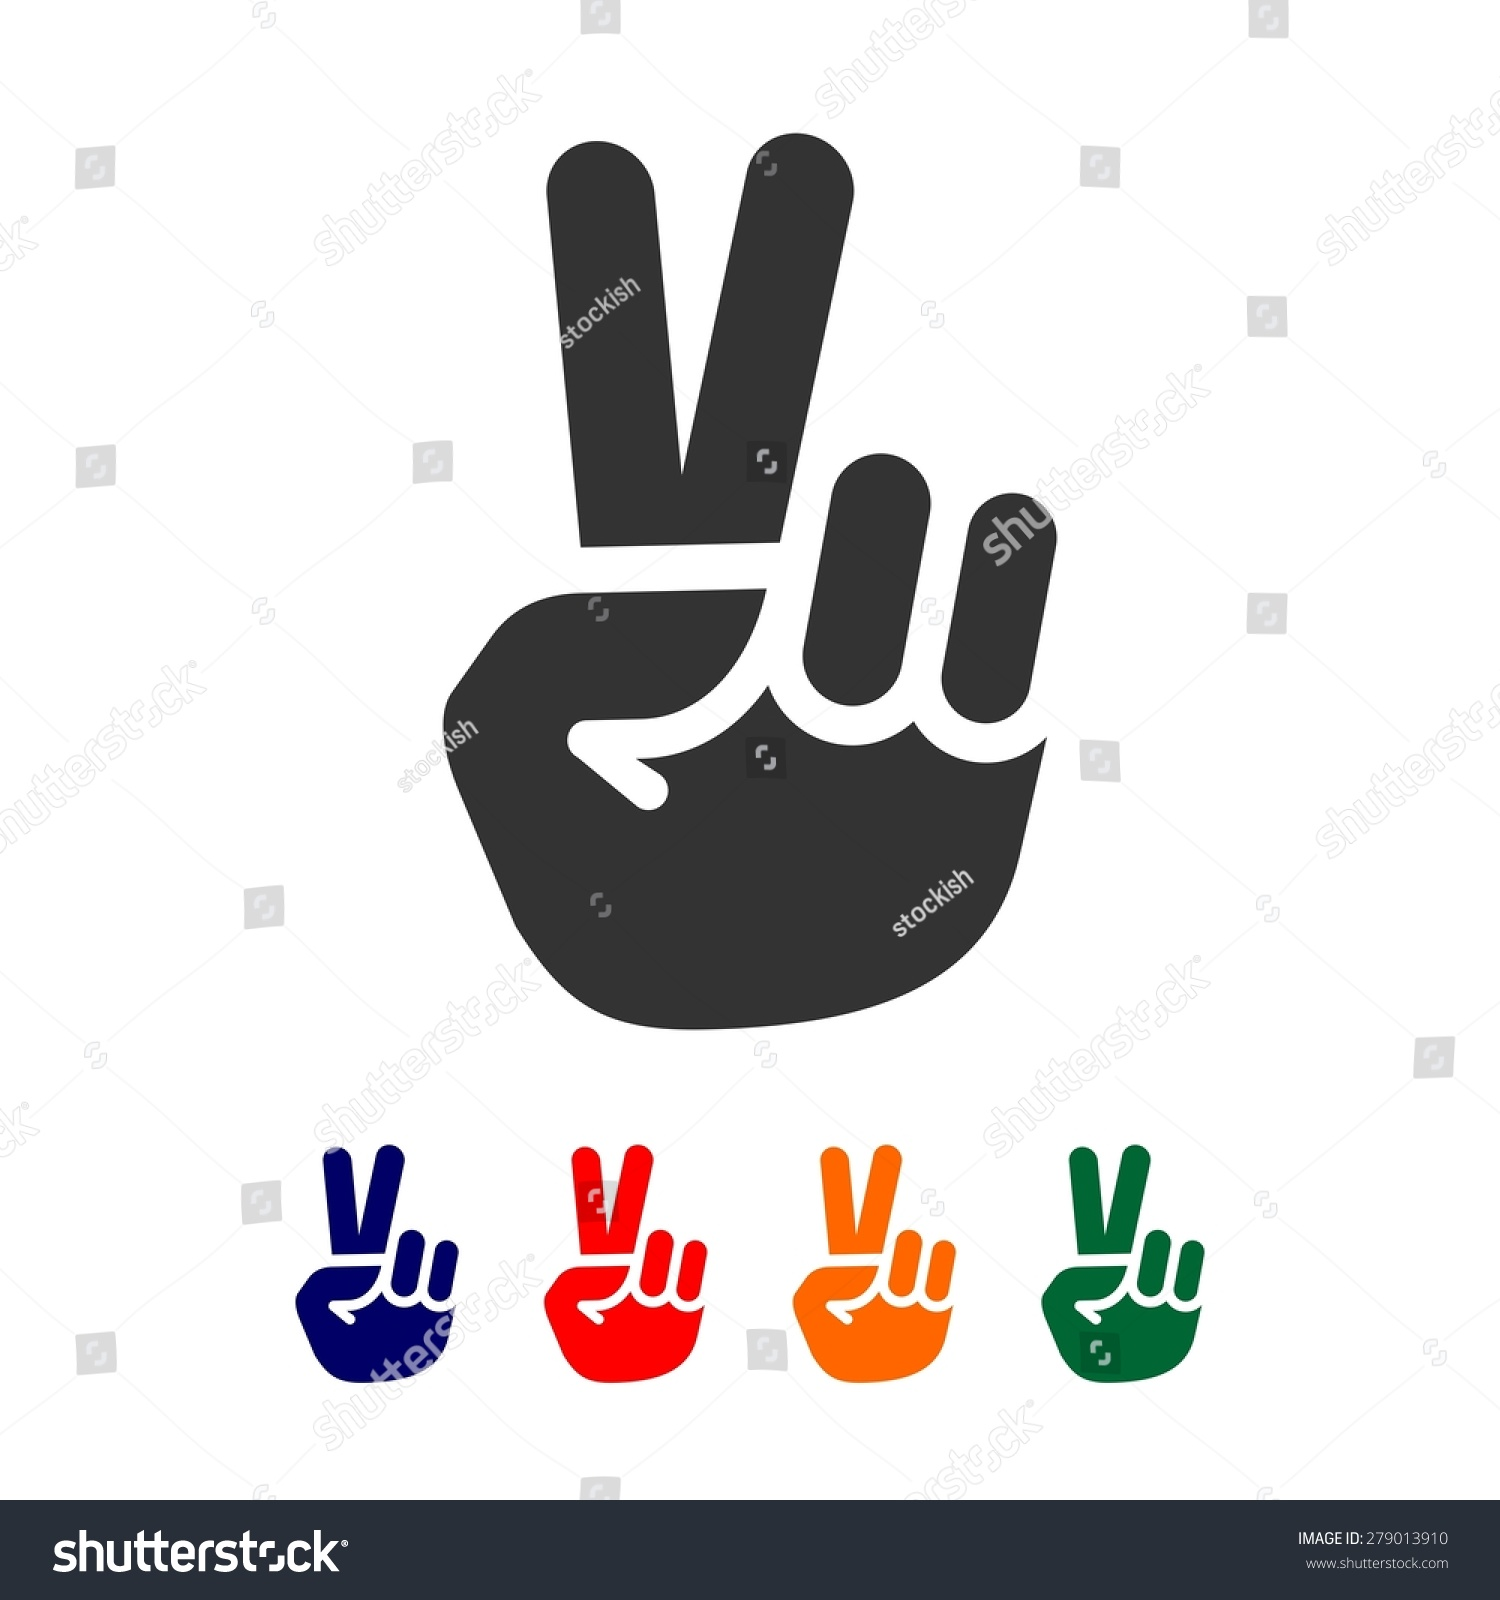 vector peace sign hand showing two fingers logo design